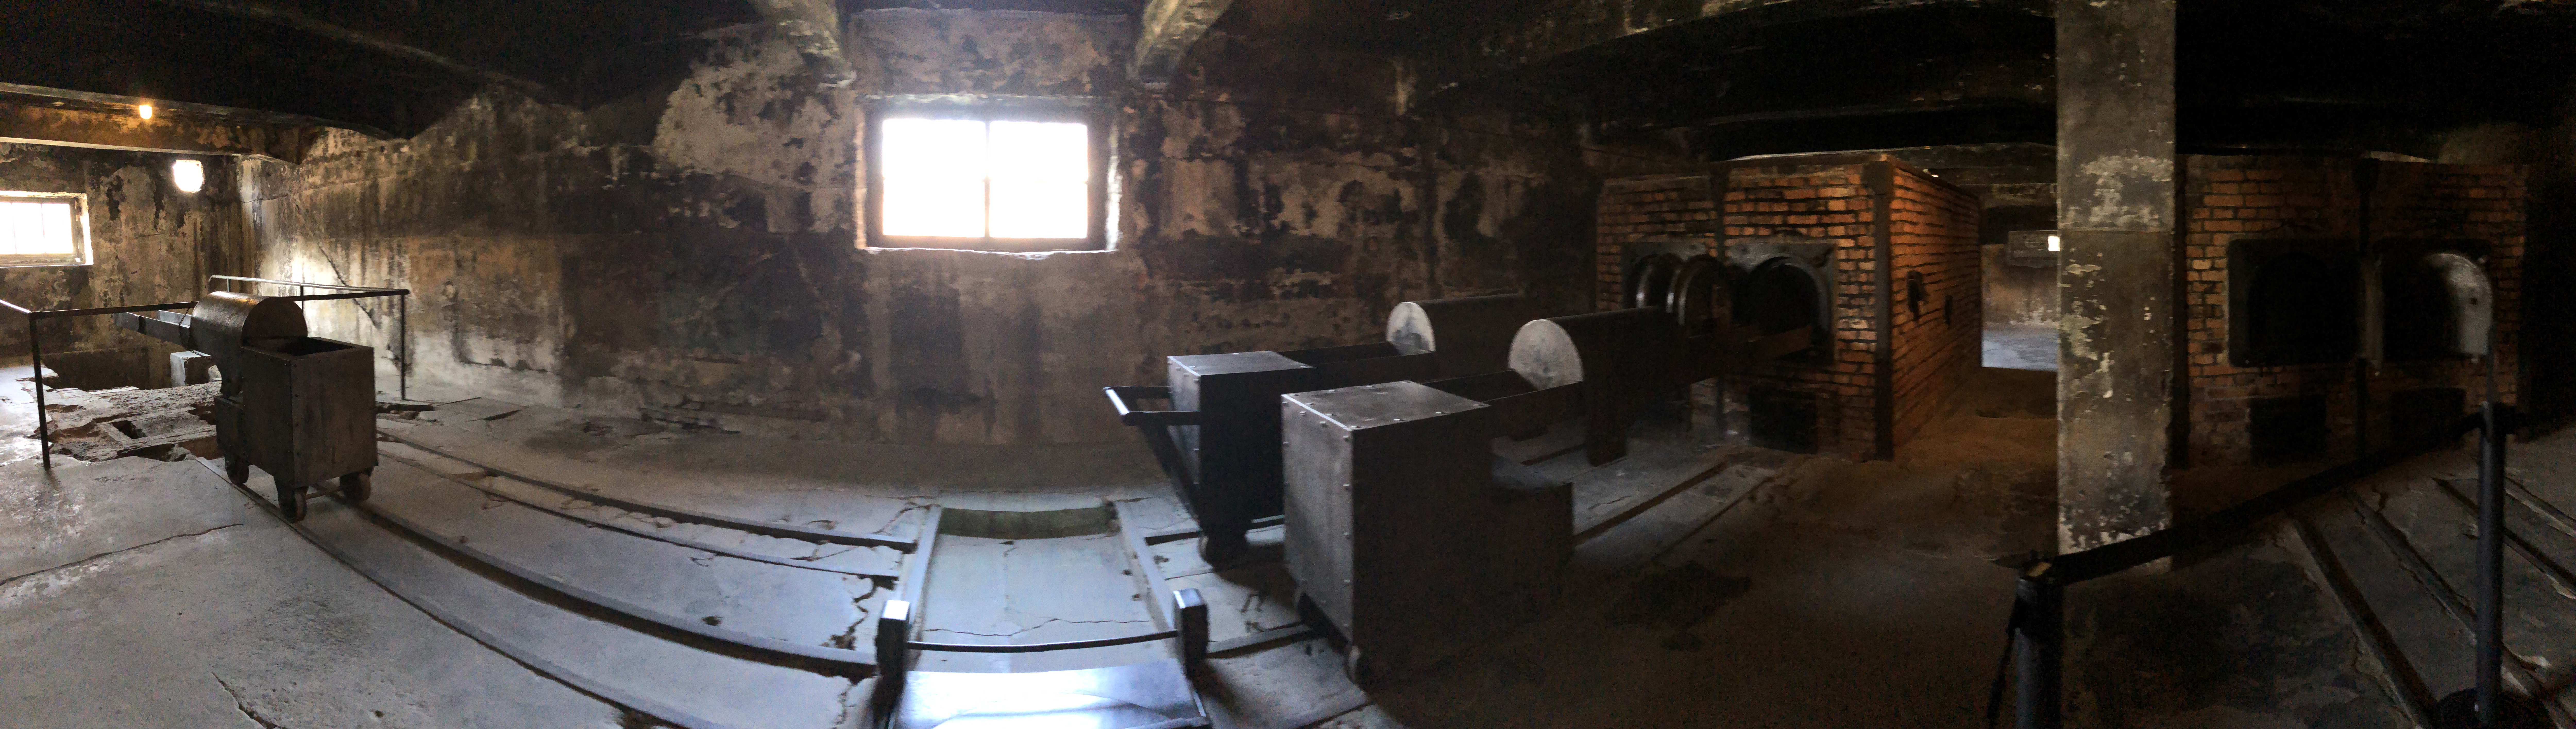 auschwitz crematorium panoramic